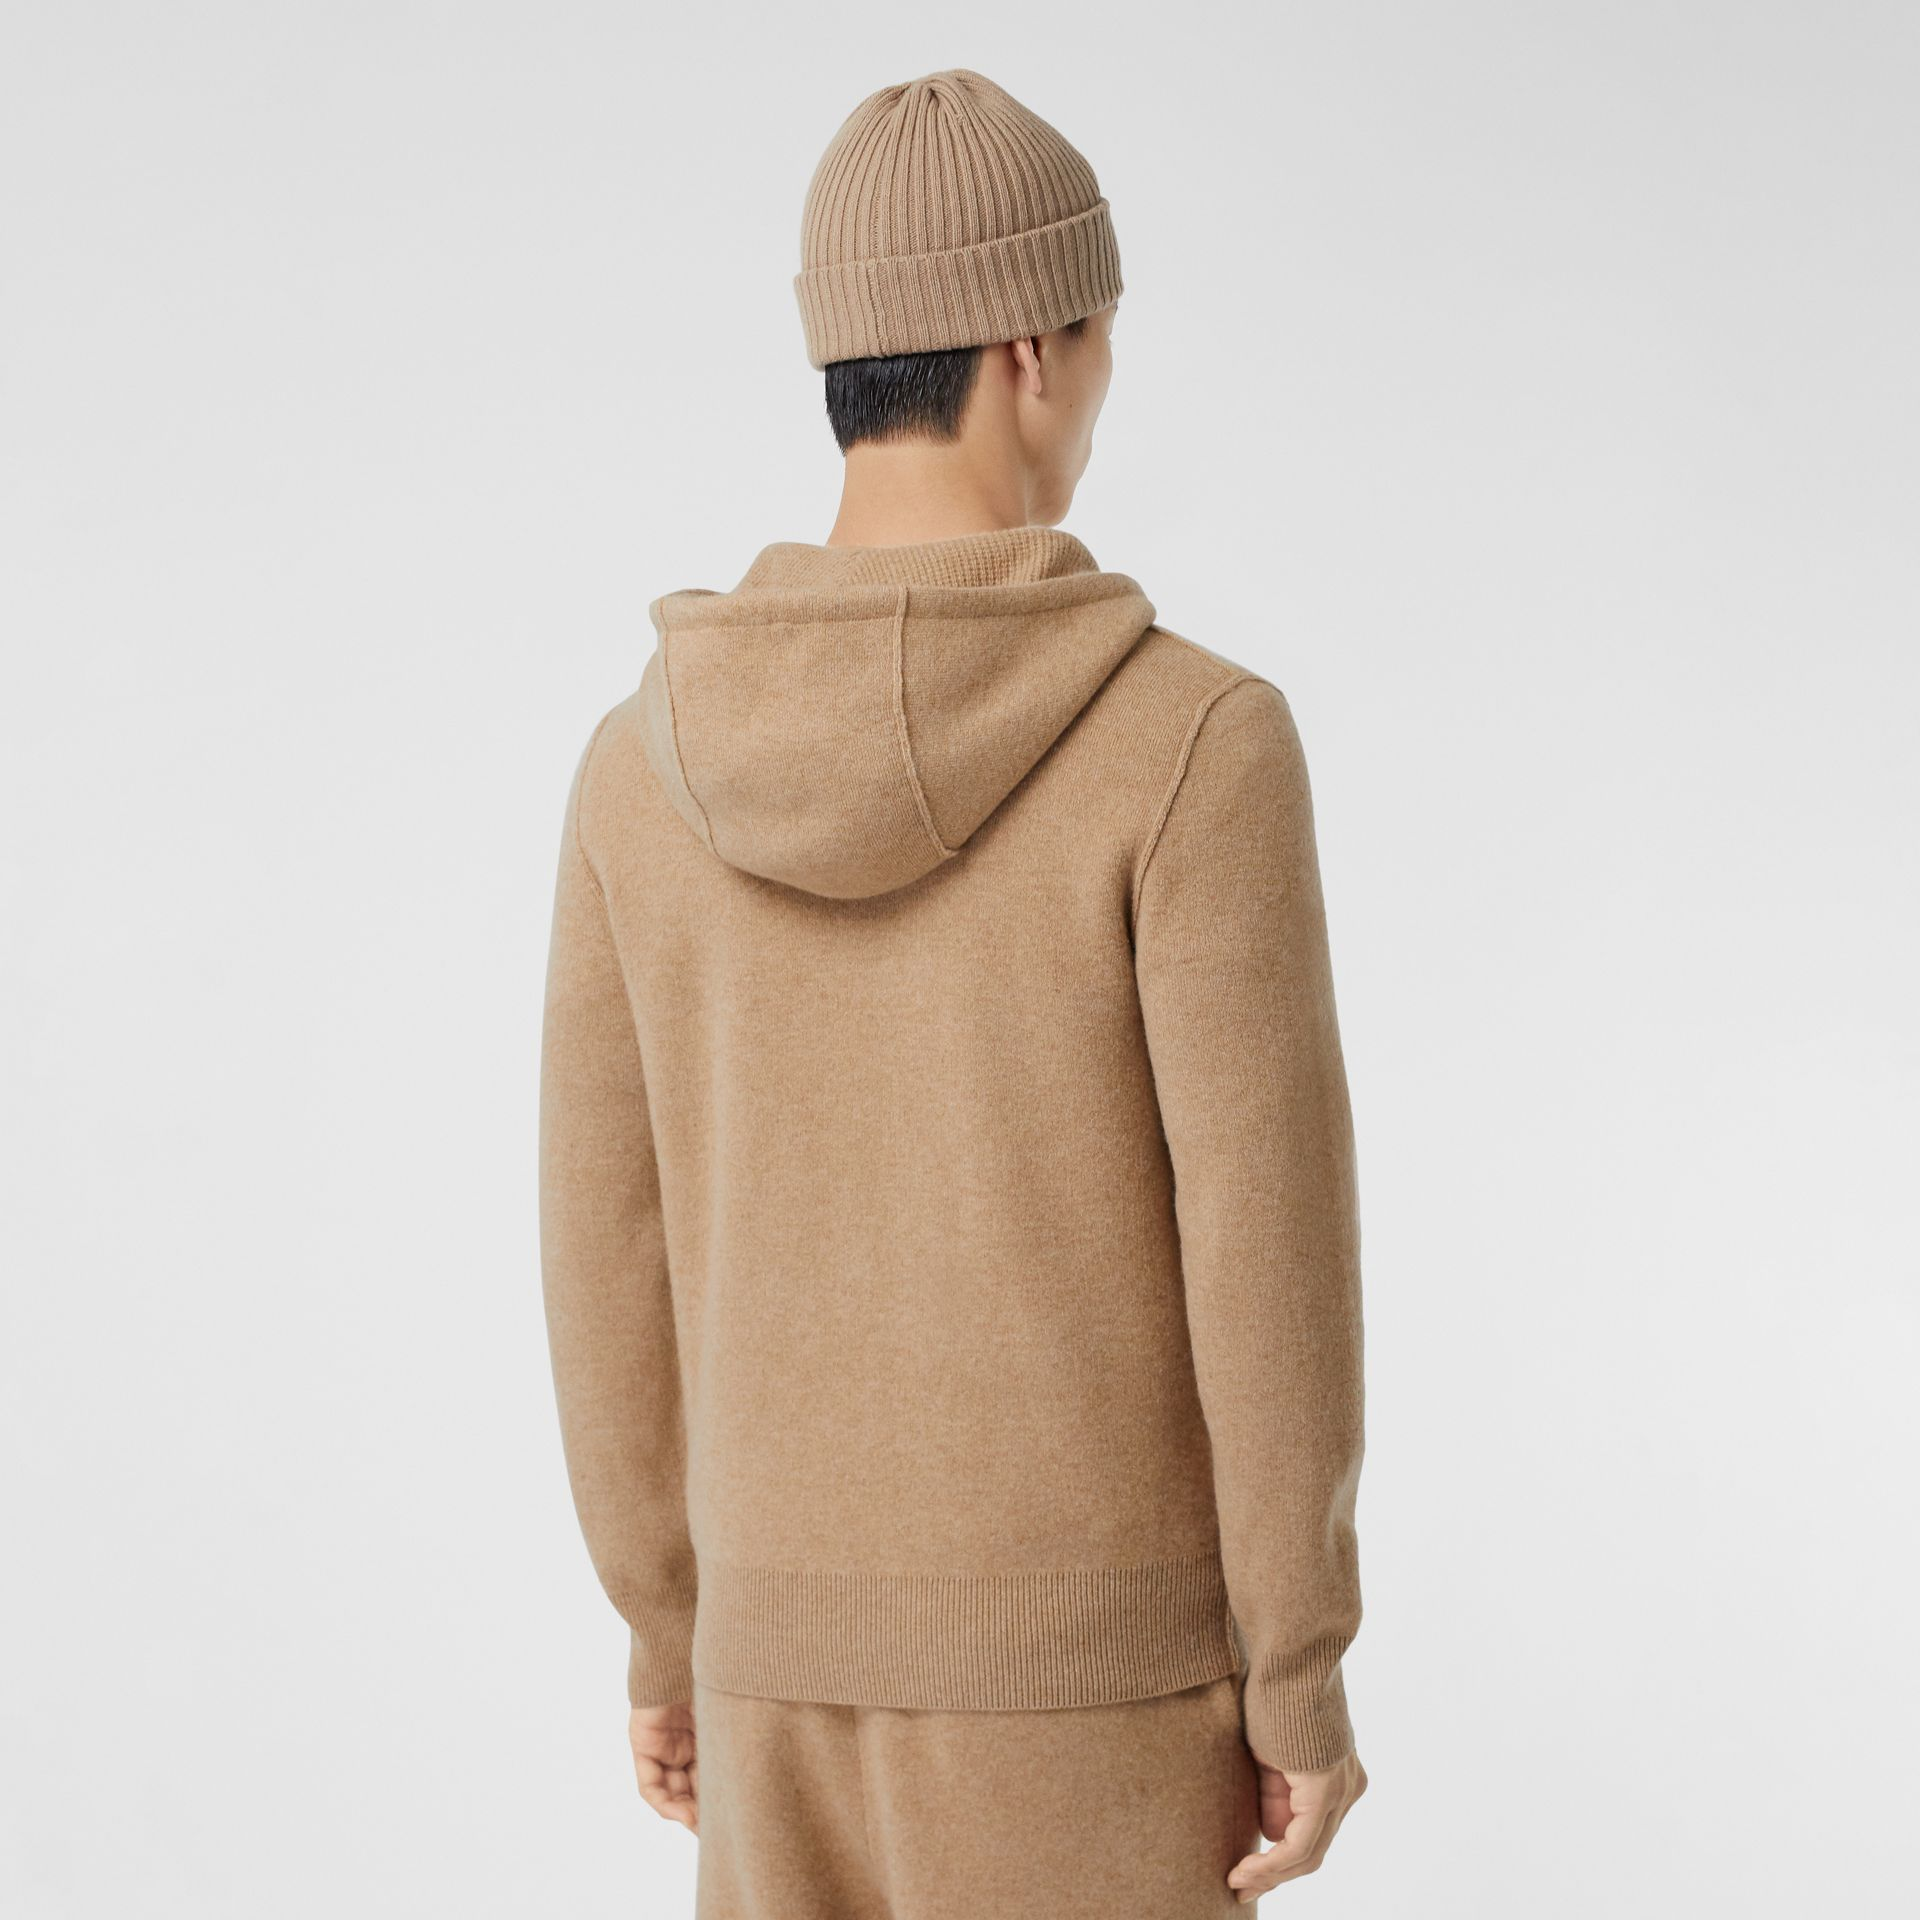 Monogram Motif Cashmere Blend Hooded Top in Pale Coffee - Men | Burberry Hong Kong S.A.R - gallery image 2